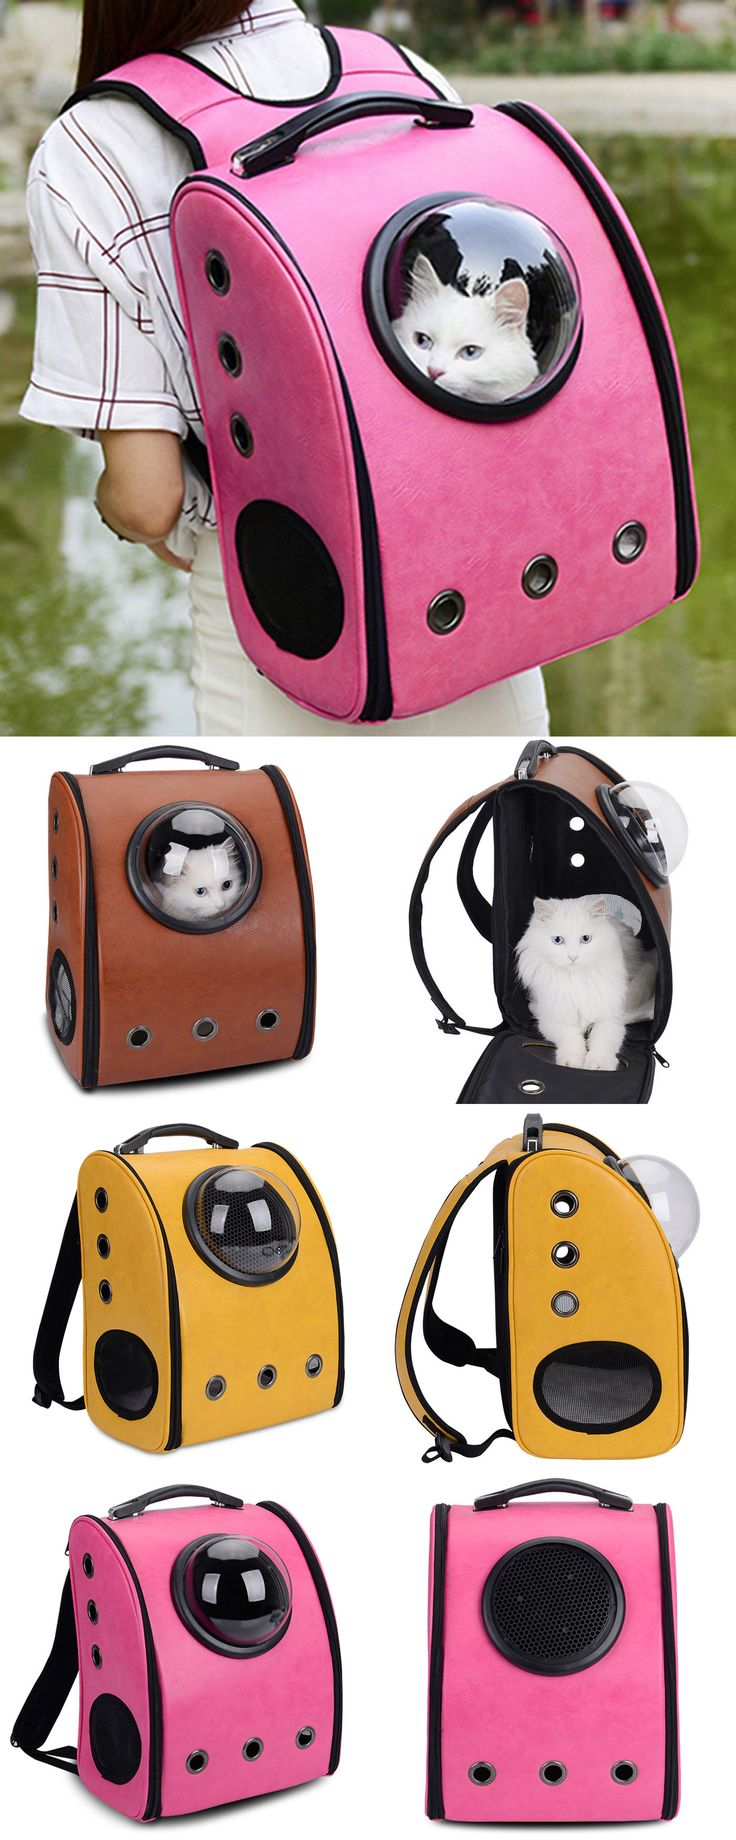 $22.54,Breathable Grommet Space Capsule Backpack - Brown | Rosewholesale,rosewholesale.com,rosewholesale bag,rosewholesale for women,rosewholesale clothes,rosewholesale.com clothing,rosewholesale plus size,backpack,cat,pet,pet bags,pet carriers,Pet Package,pet cages,pet supplies,pet leashes &collars,pet houses &beds | #rosewholesale #backpack #petcarrier #pets